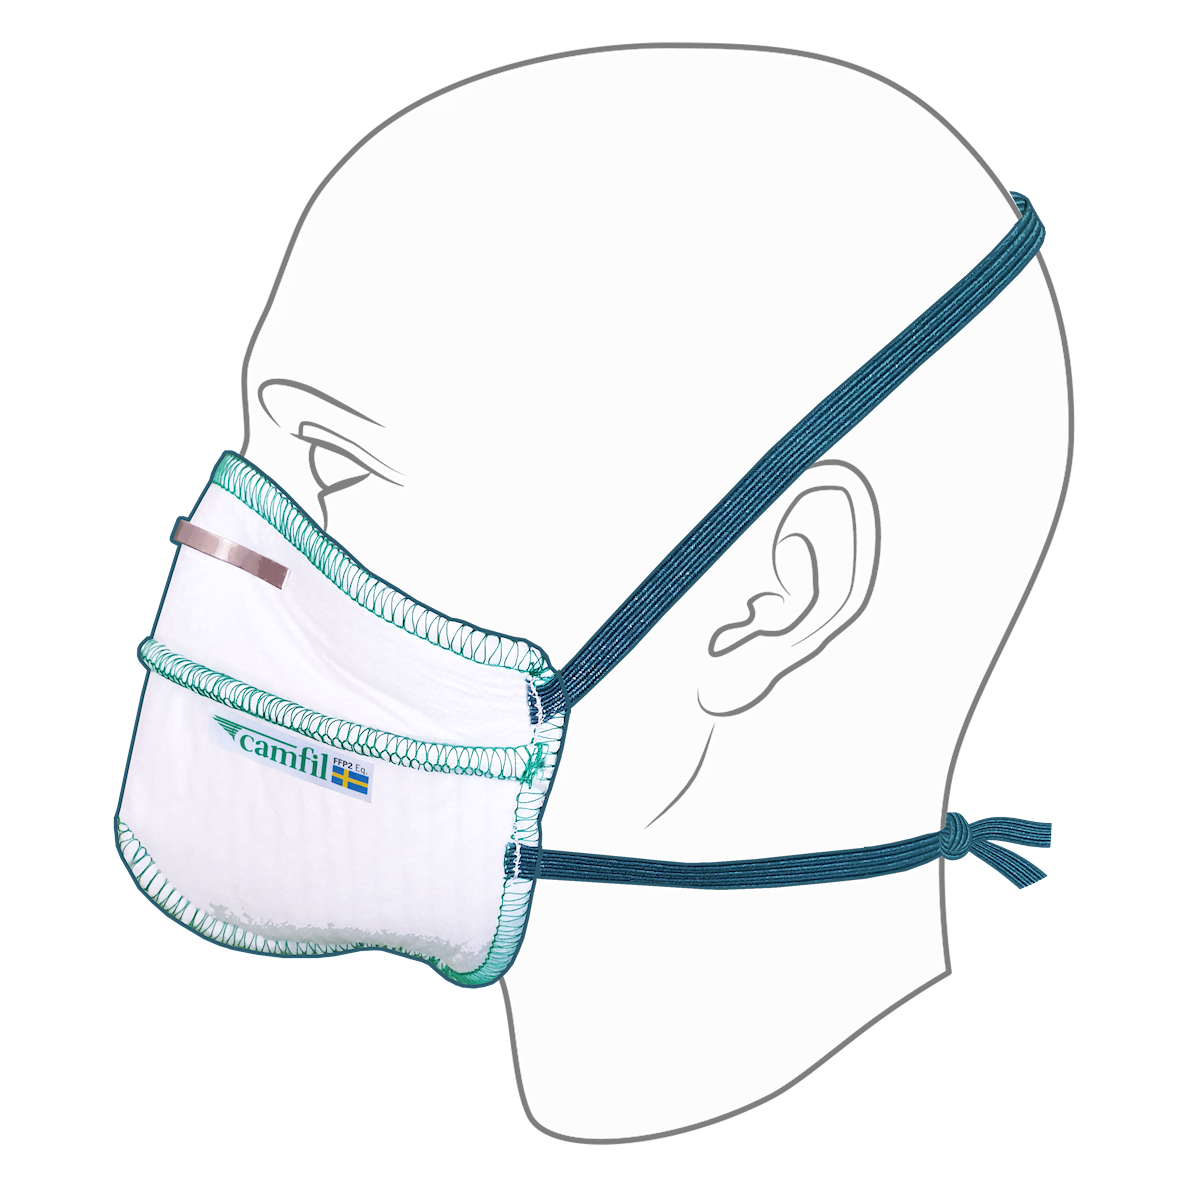 CamProtect-SIDE-head-mask-in-place-CPM2 (3)